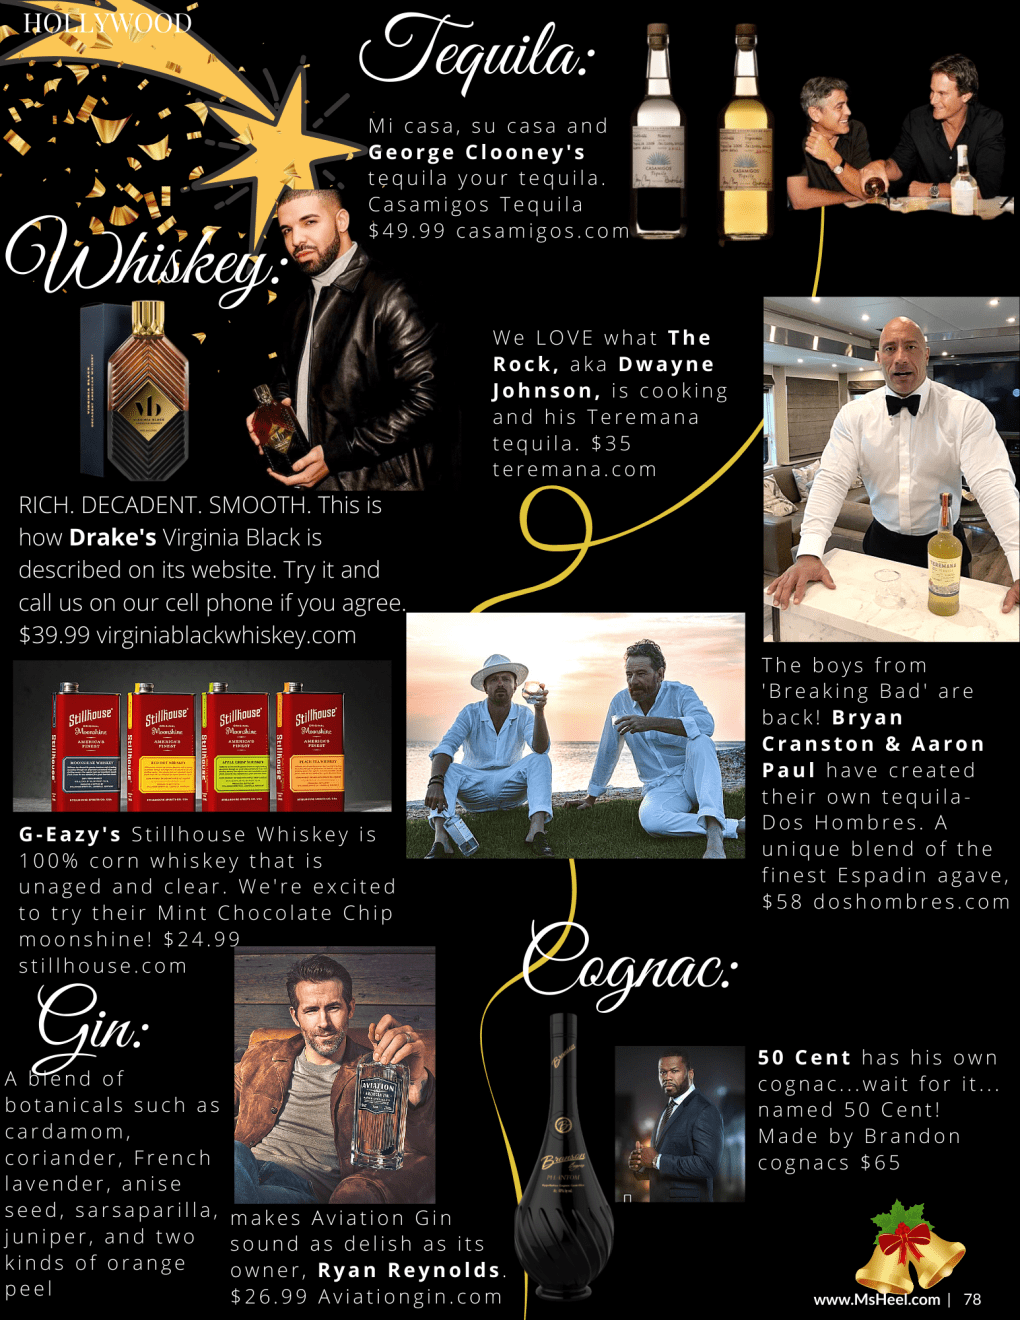 George Clooney Tequila, The Rock Tequila, Bryan Cranston and Aaron Paul tequila, Ryan Reynolds gin, 50 cent cognac and Drake whiskey.